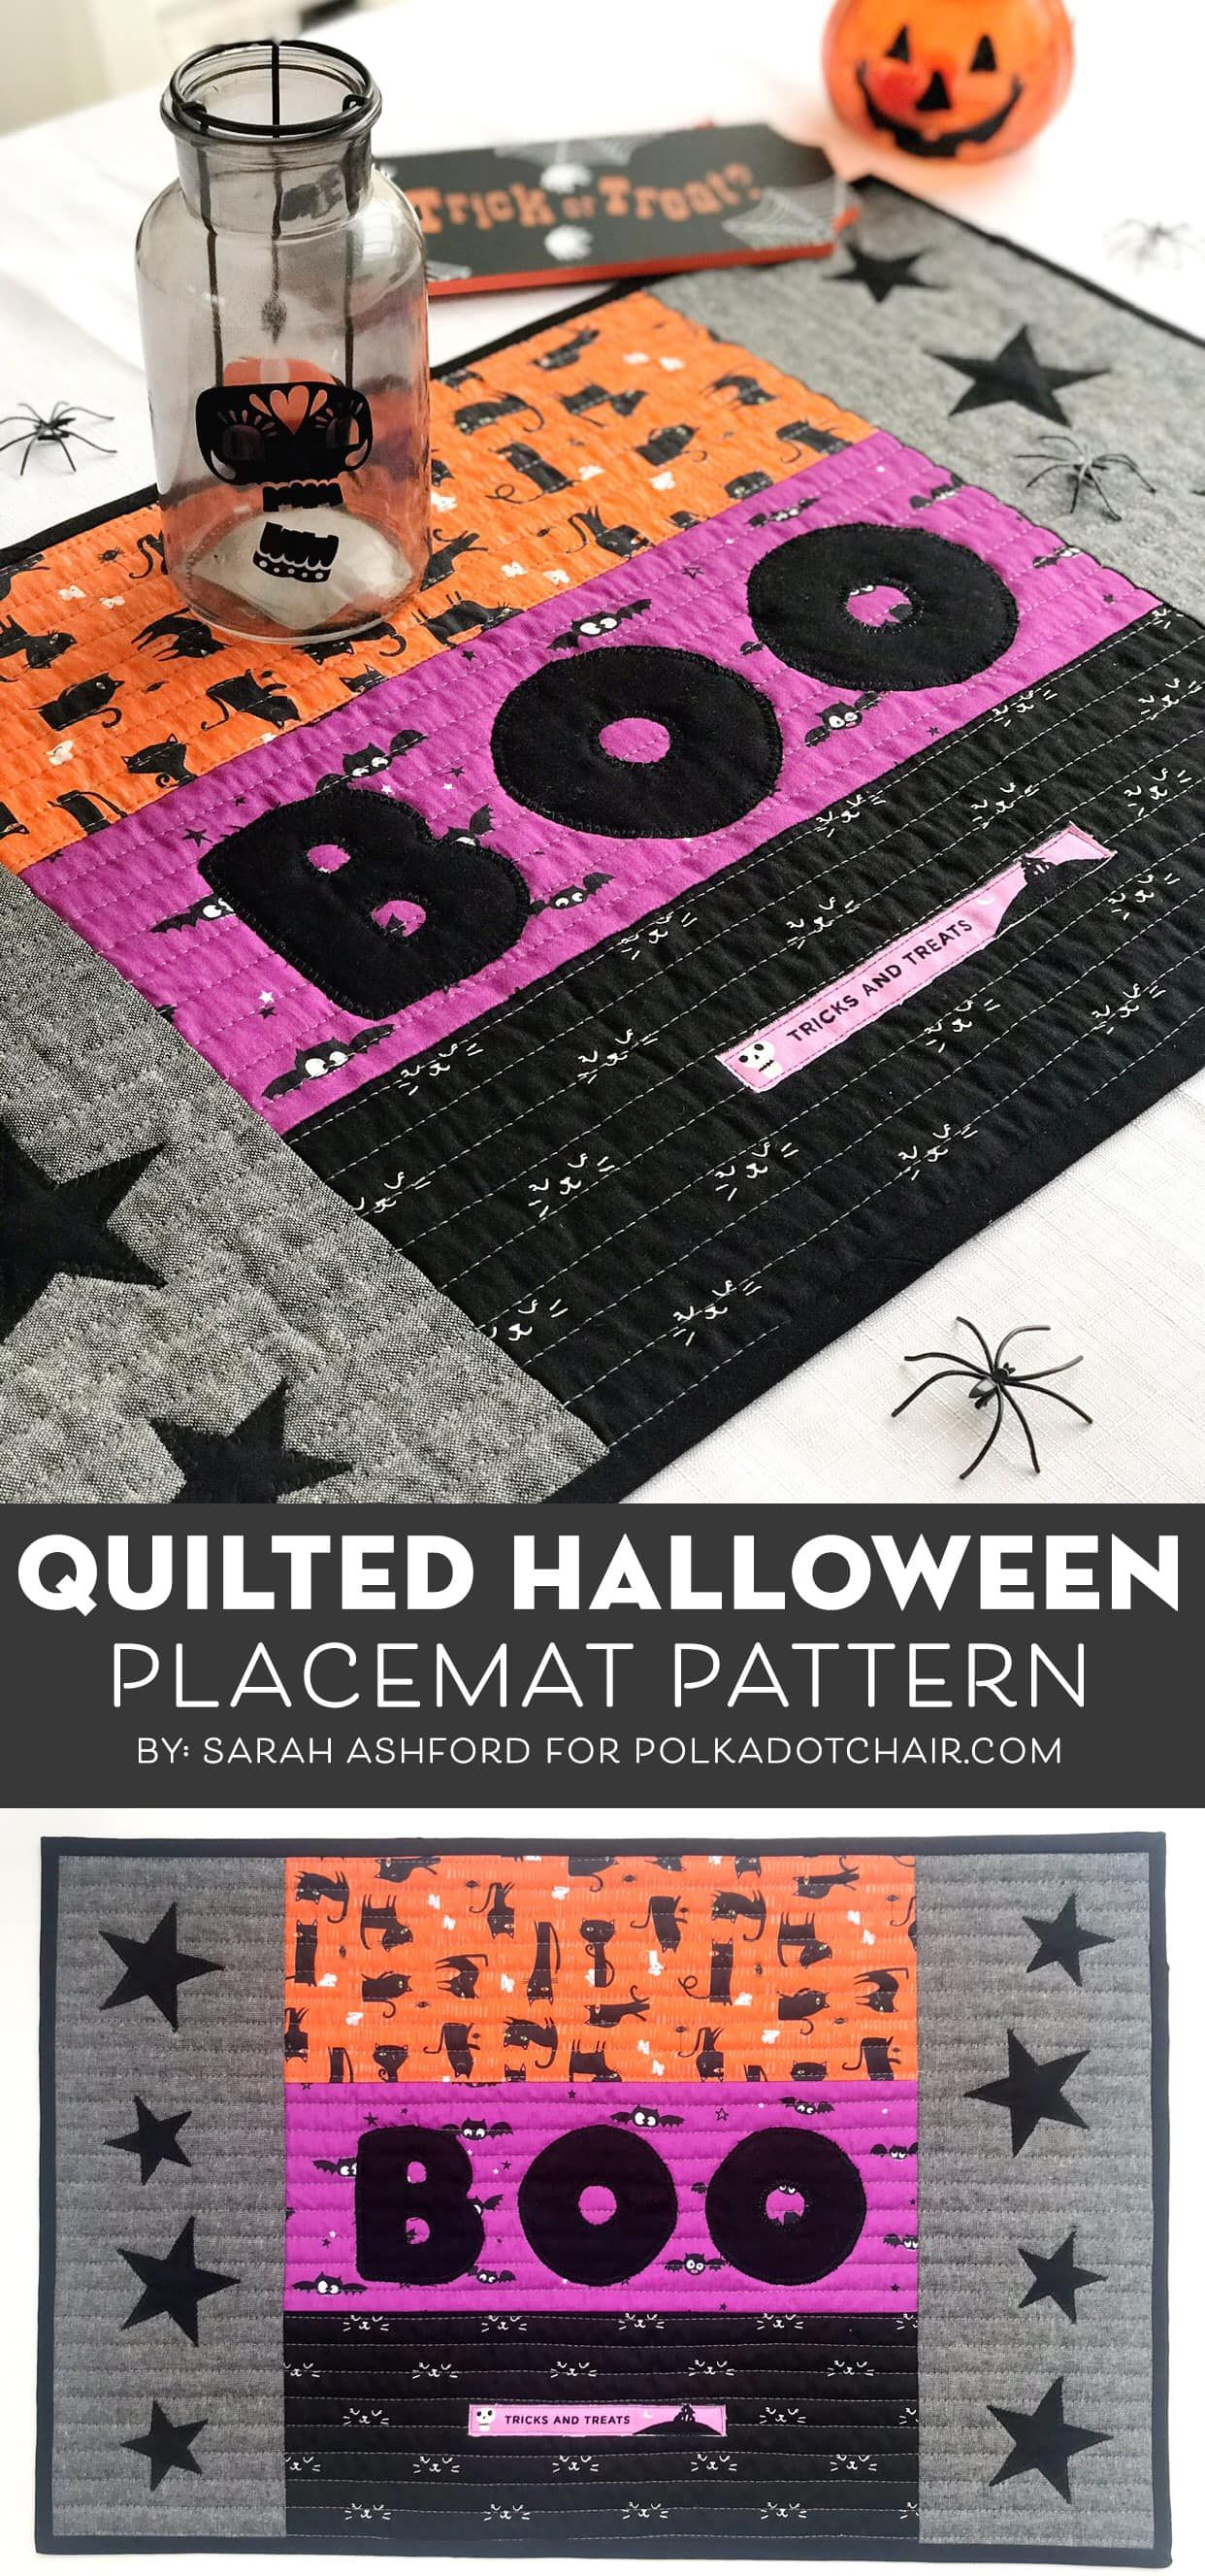 Quilted Halloween Placemat Pattern Halloween Placemats Placemats Patterns Halloween Quilt Patterns